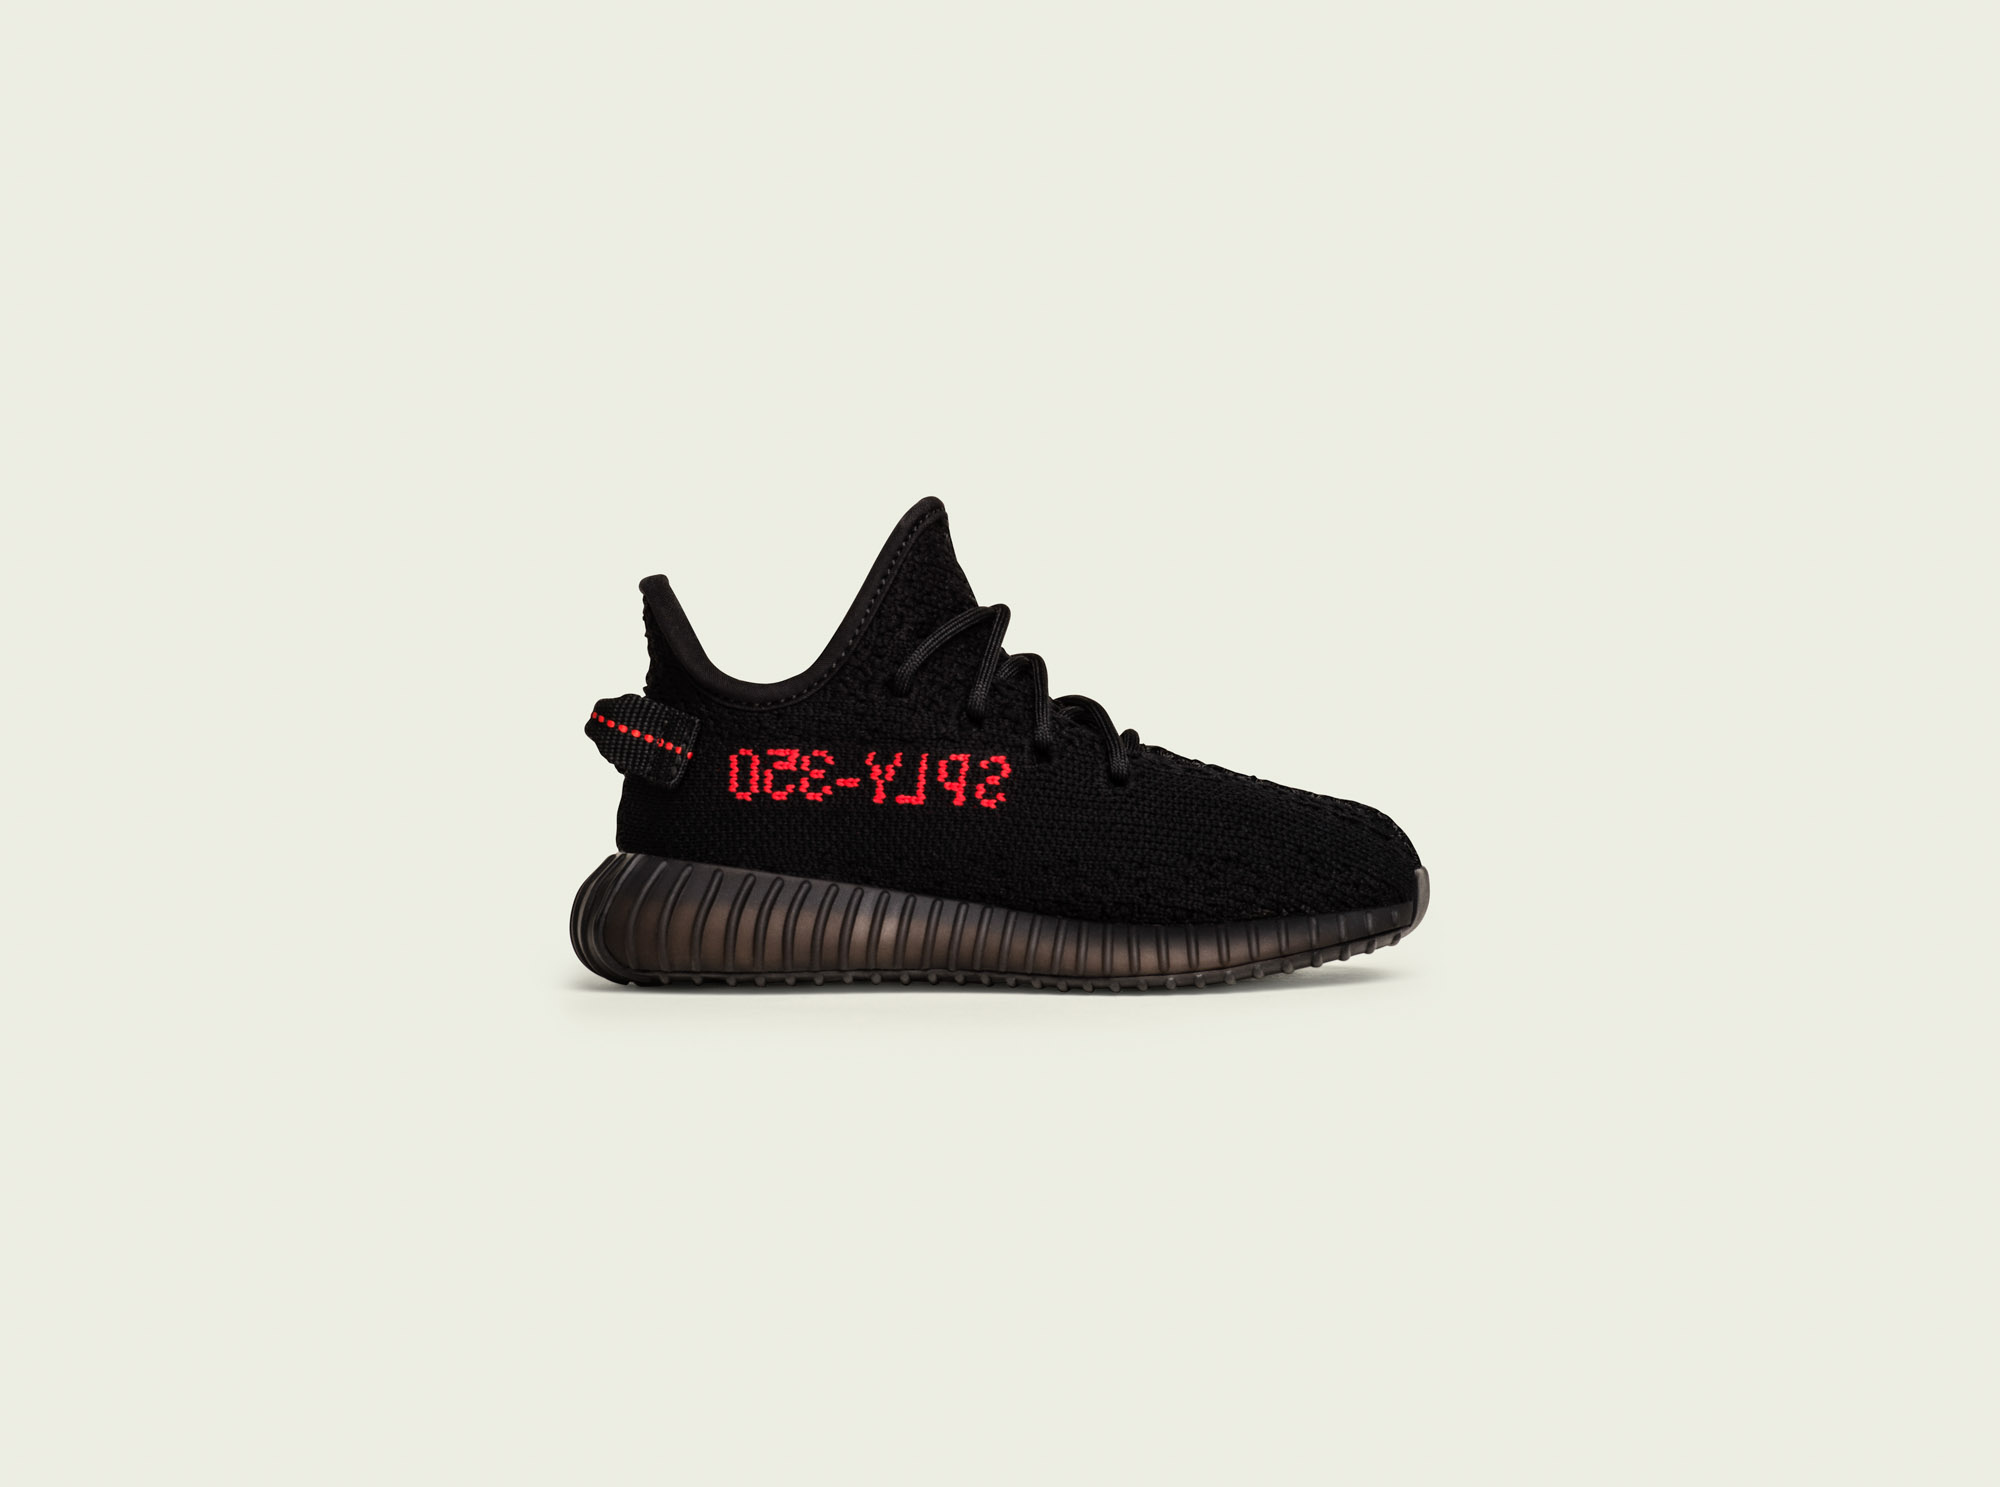 Adidas Yeezy Colorways, Release Dates, Pricing